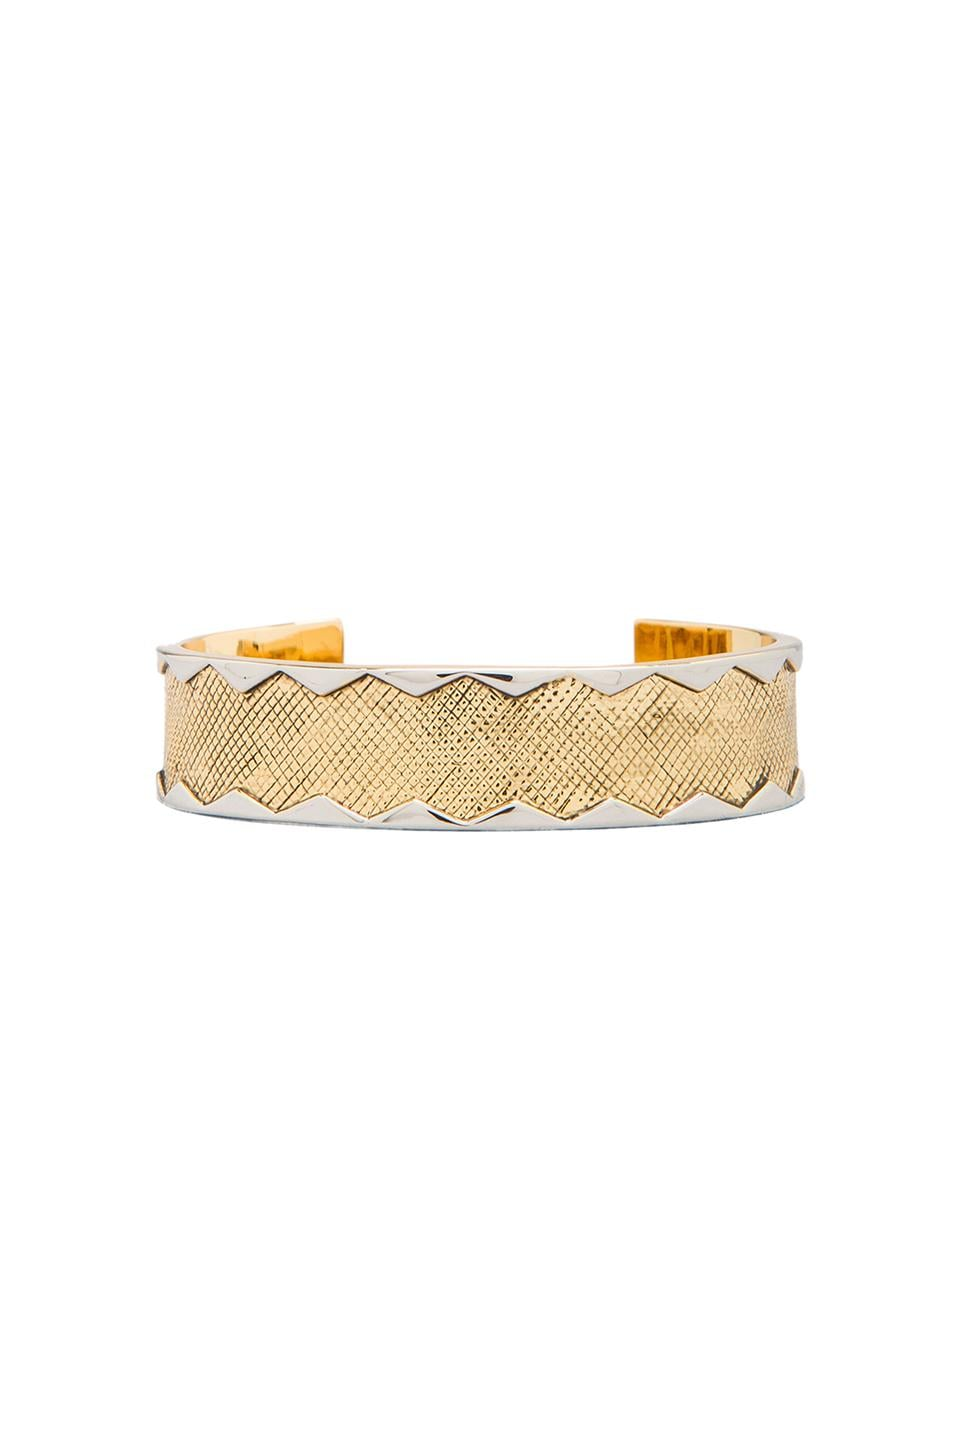 House of Harlow 1960 House of Harlow Wavelength Cuff in Gold